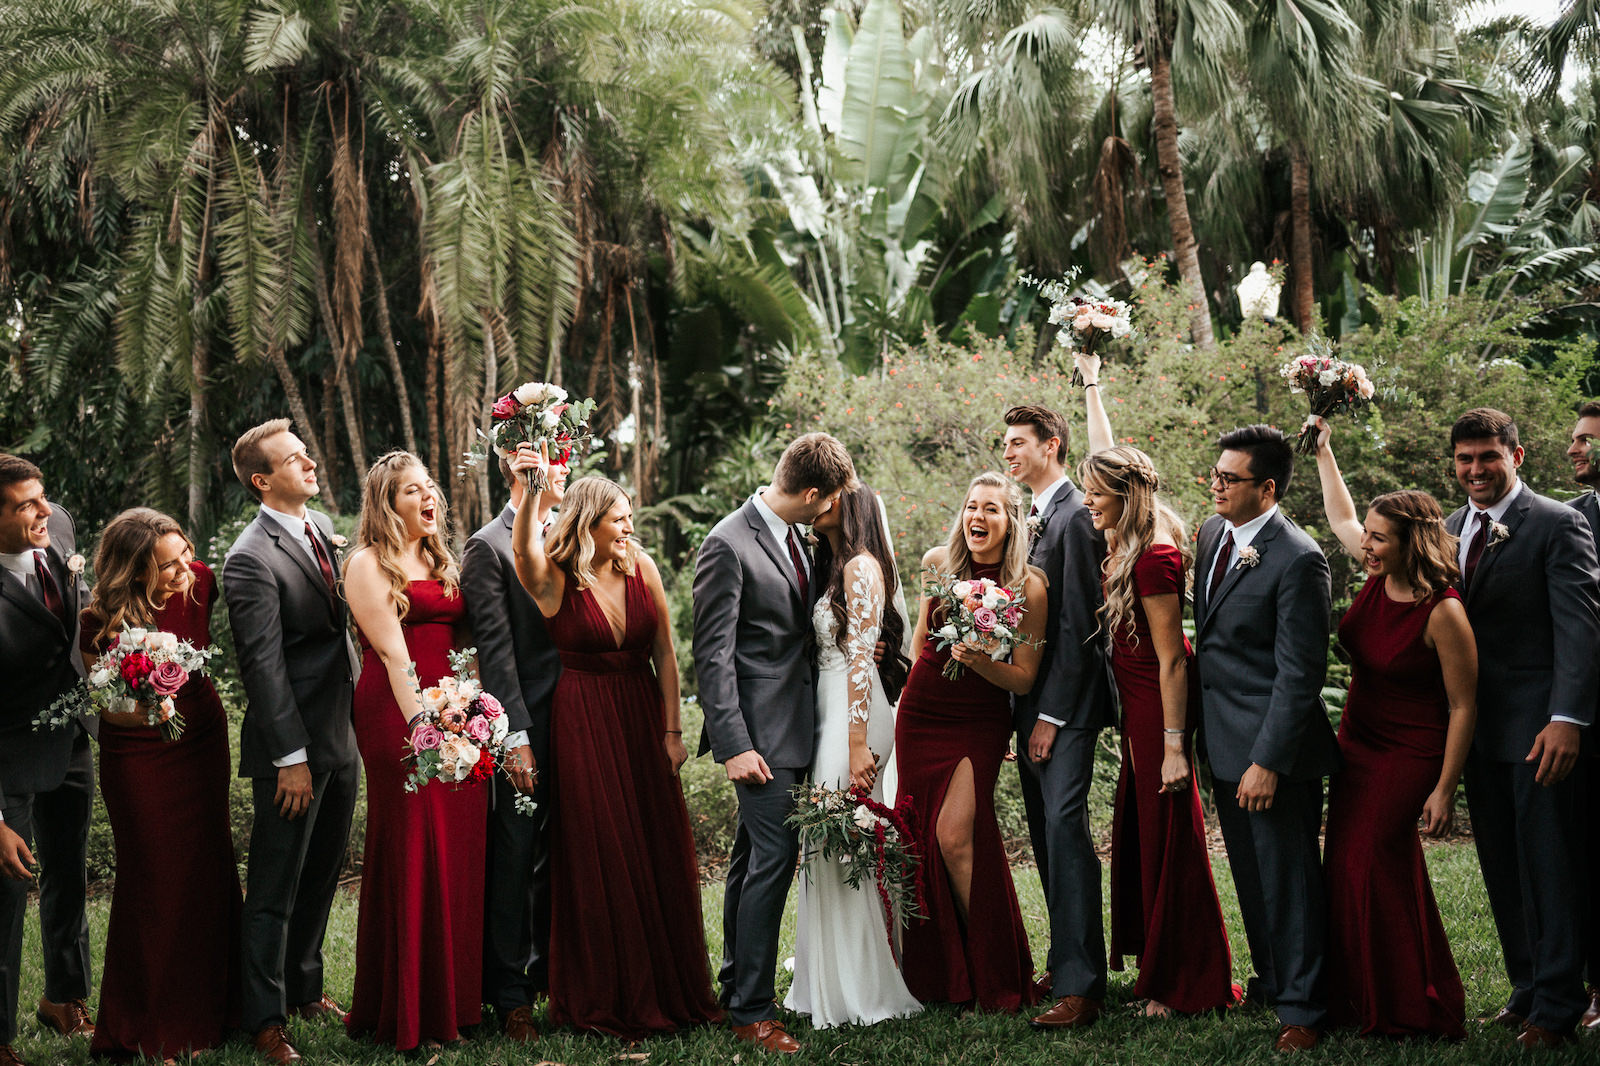 St. Petersburg Wedding Party, Bridal Bouquet with Exotic Tropical Inspired Flowers, White, Dark Purple, Burgundy, Wine Florals with Greenery, Bridesmaids in Long Mismatched BHLDN Dresses in Dark Burgundy and Wine Color | Florida Wedding Florist Posies Flower Truck | Tampa Bay Wedding Planner John Campbell Weddings